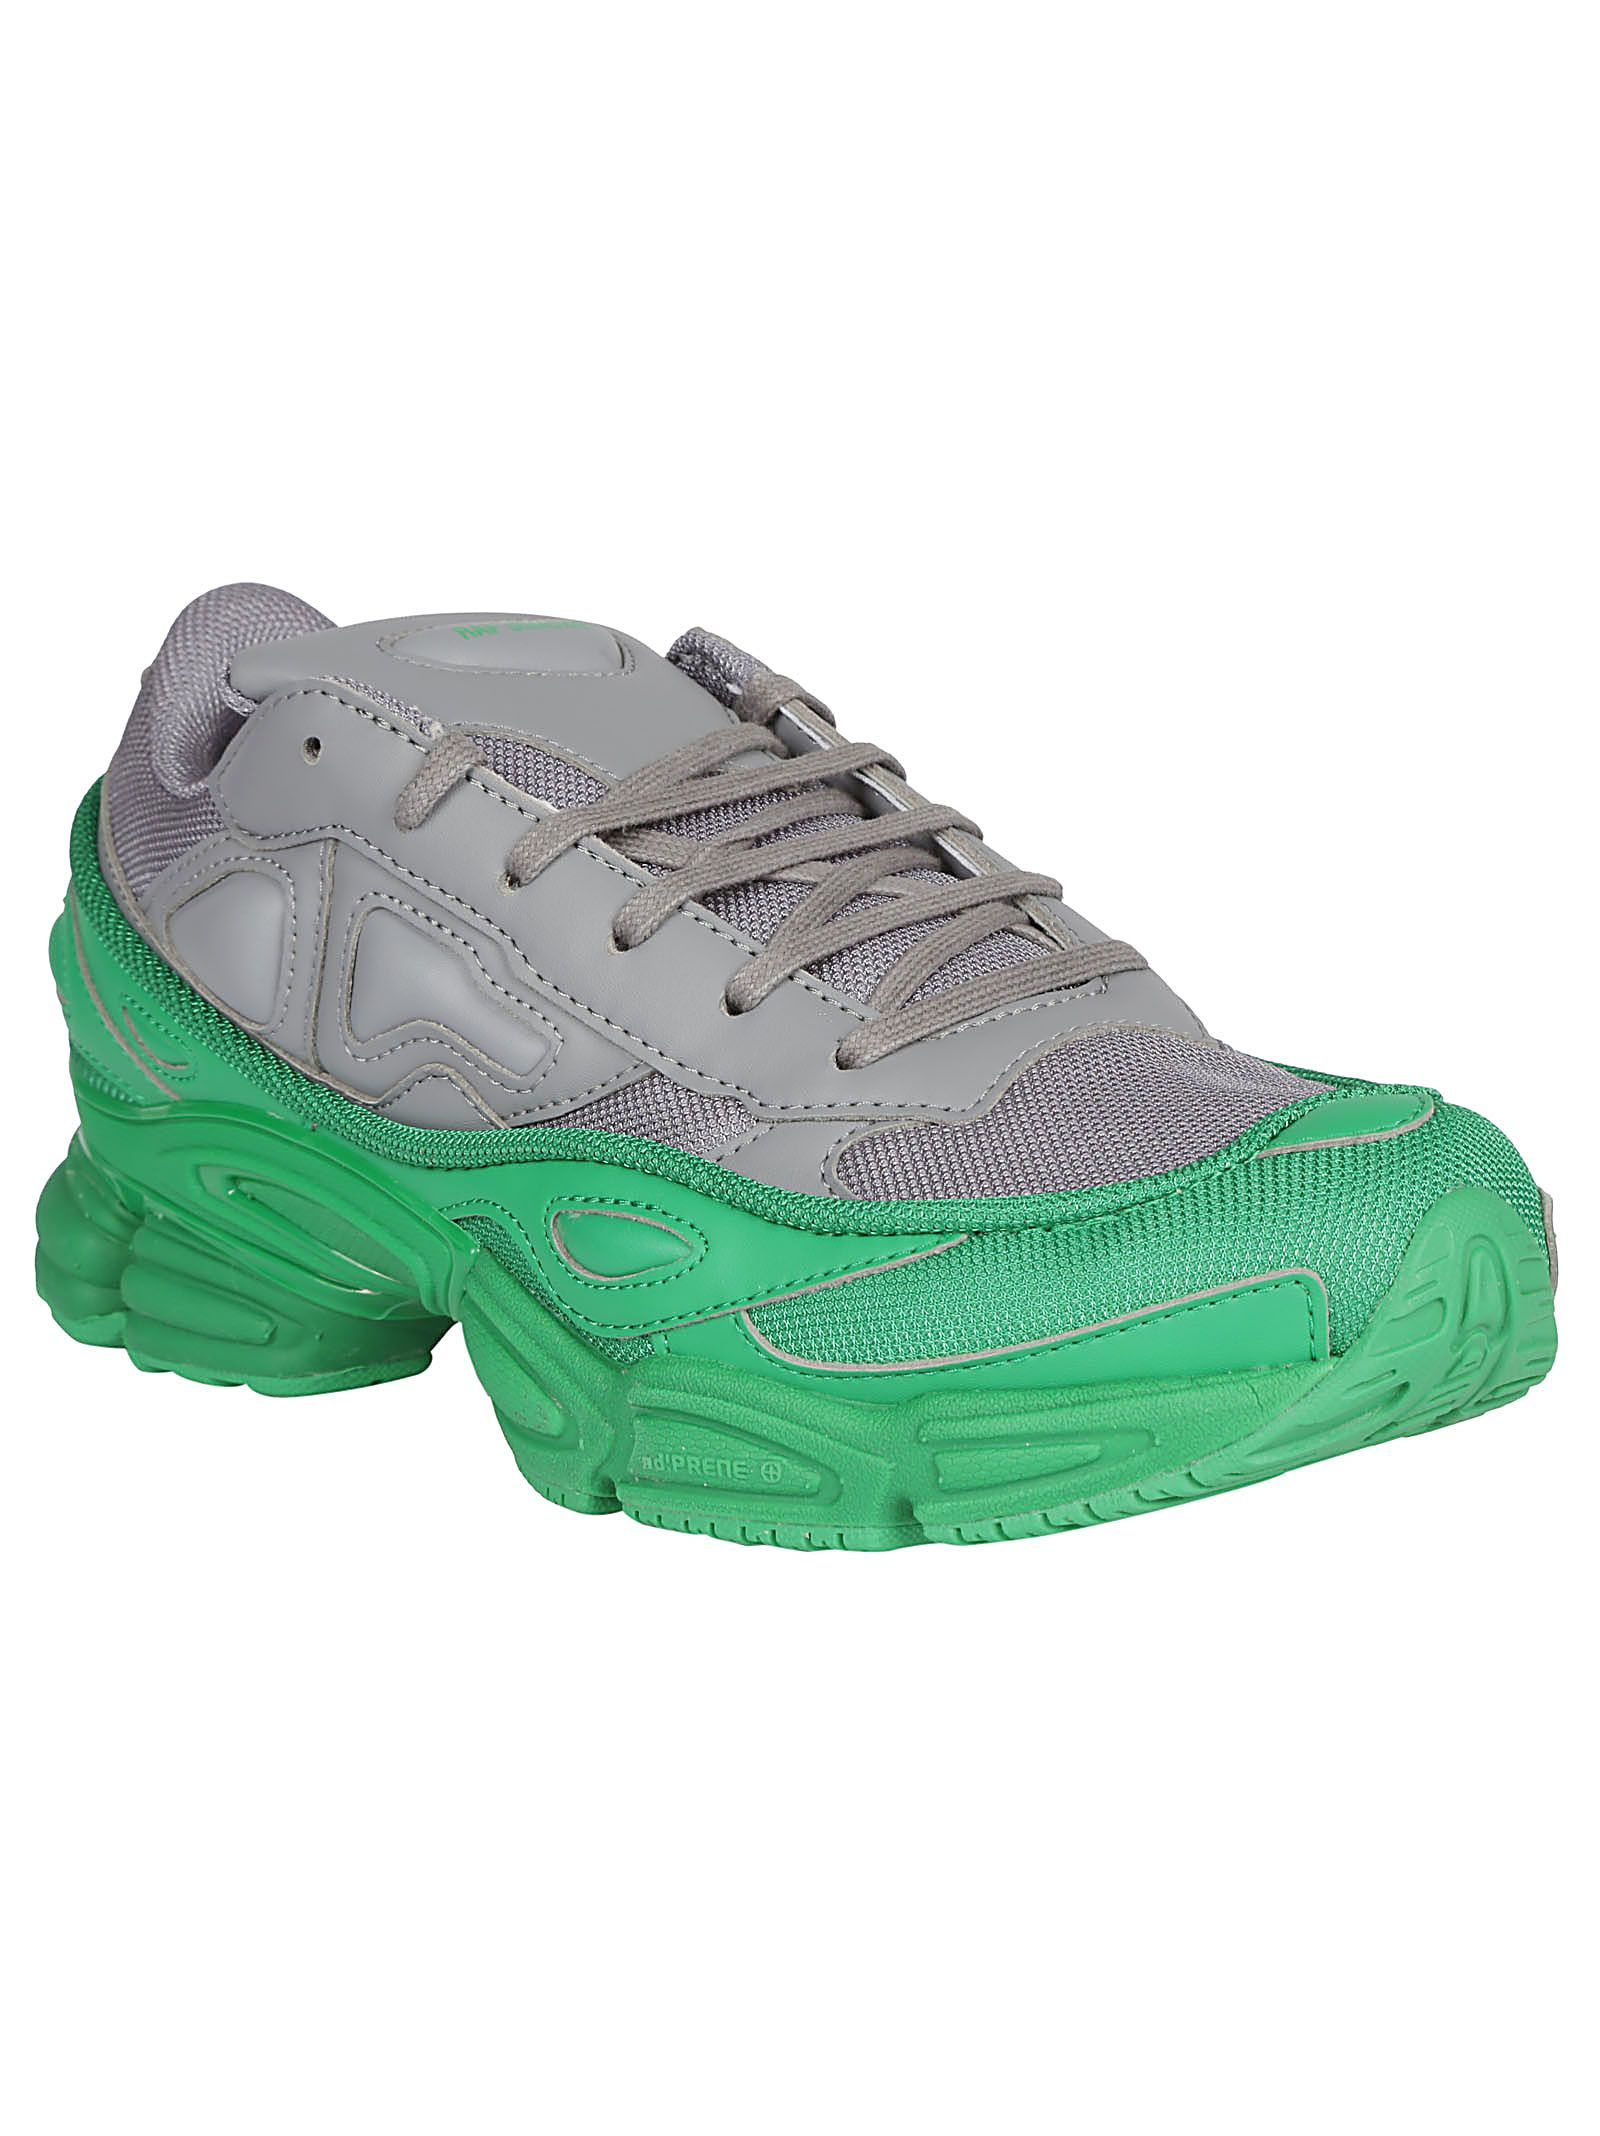 best service 2203d 744b2 ... Adidas By Raf Simons Rs Ozweego Sneakers - Greengrey ...